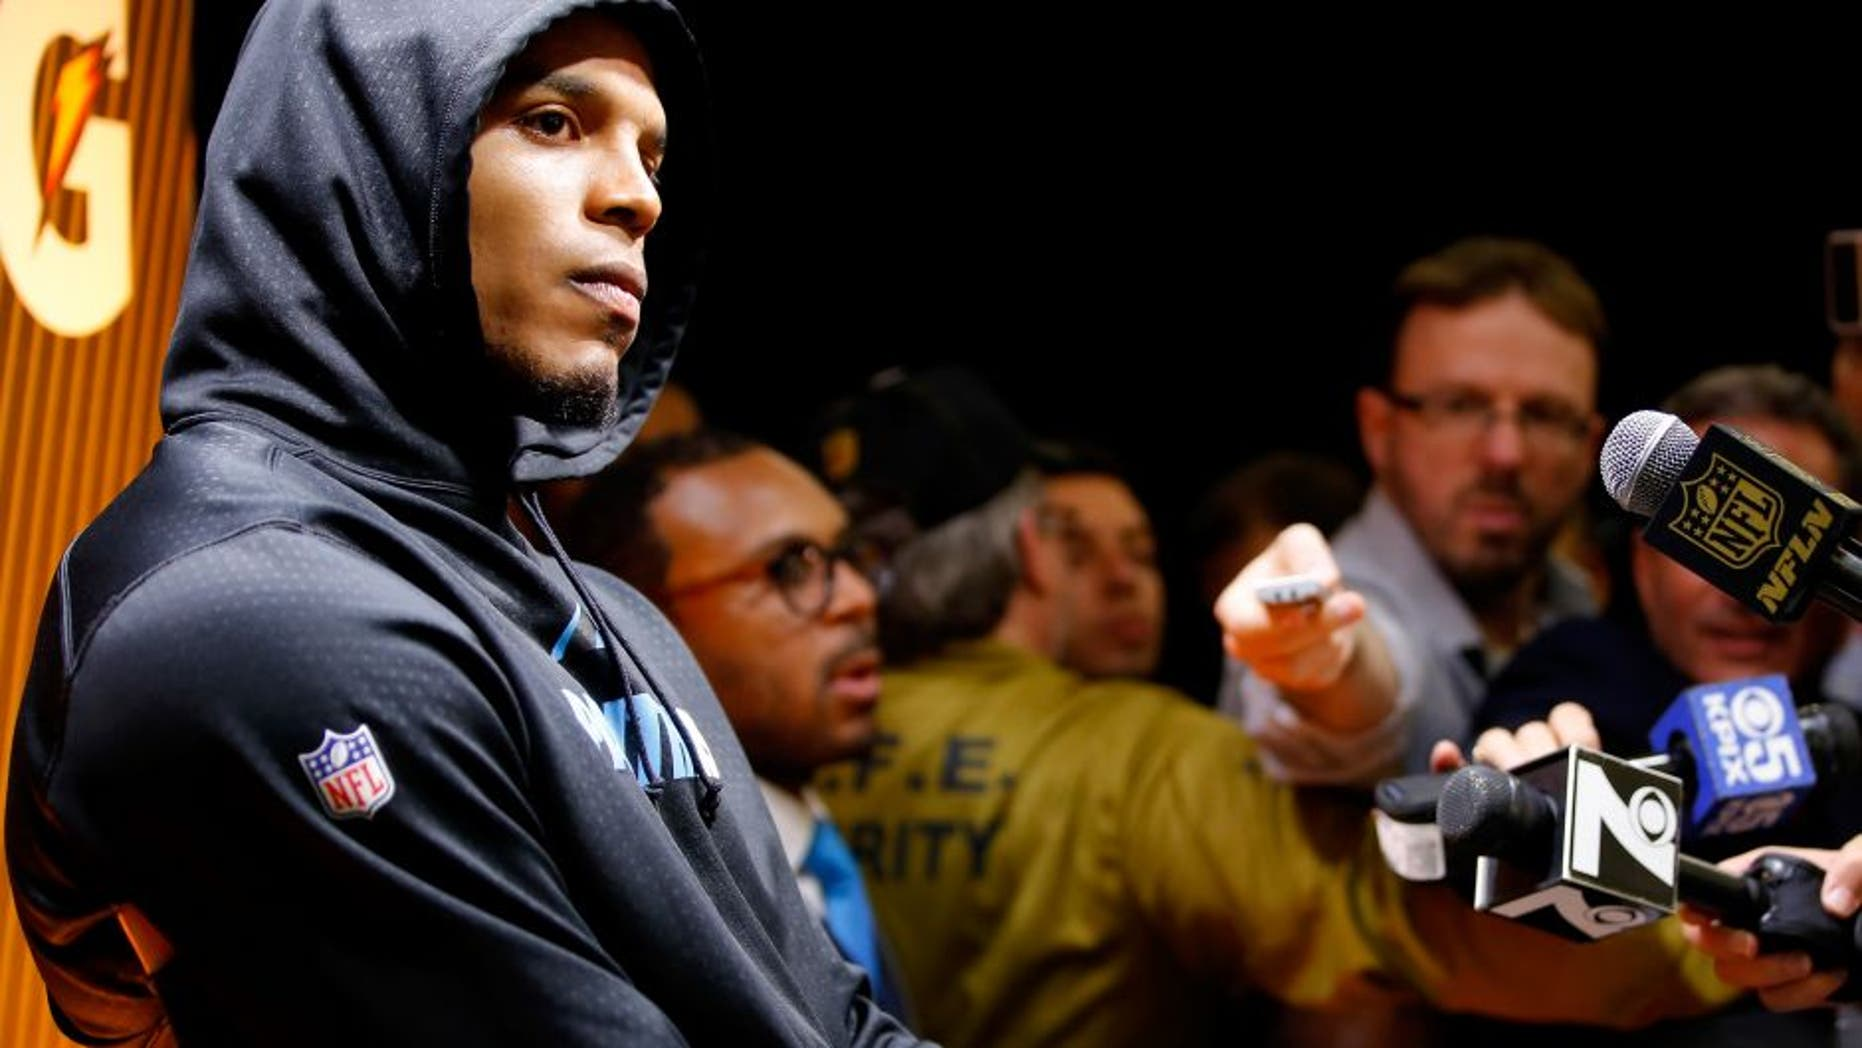 SANTA CLARA, CA - FEBRUARY 07: Cam Newton #1 of the Carolina Panthers reacts during his postgame press conference after the Denver Broncos defeated the Carolina Panthers with a score of 24 to 10 to win Super Bowl 50 at Levi's Stadium on February 7, 2016 in Santa Clara, California. (Photo by Kevin C. Cox/Getty Images)